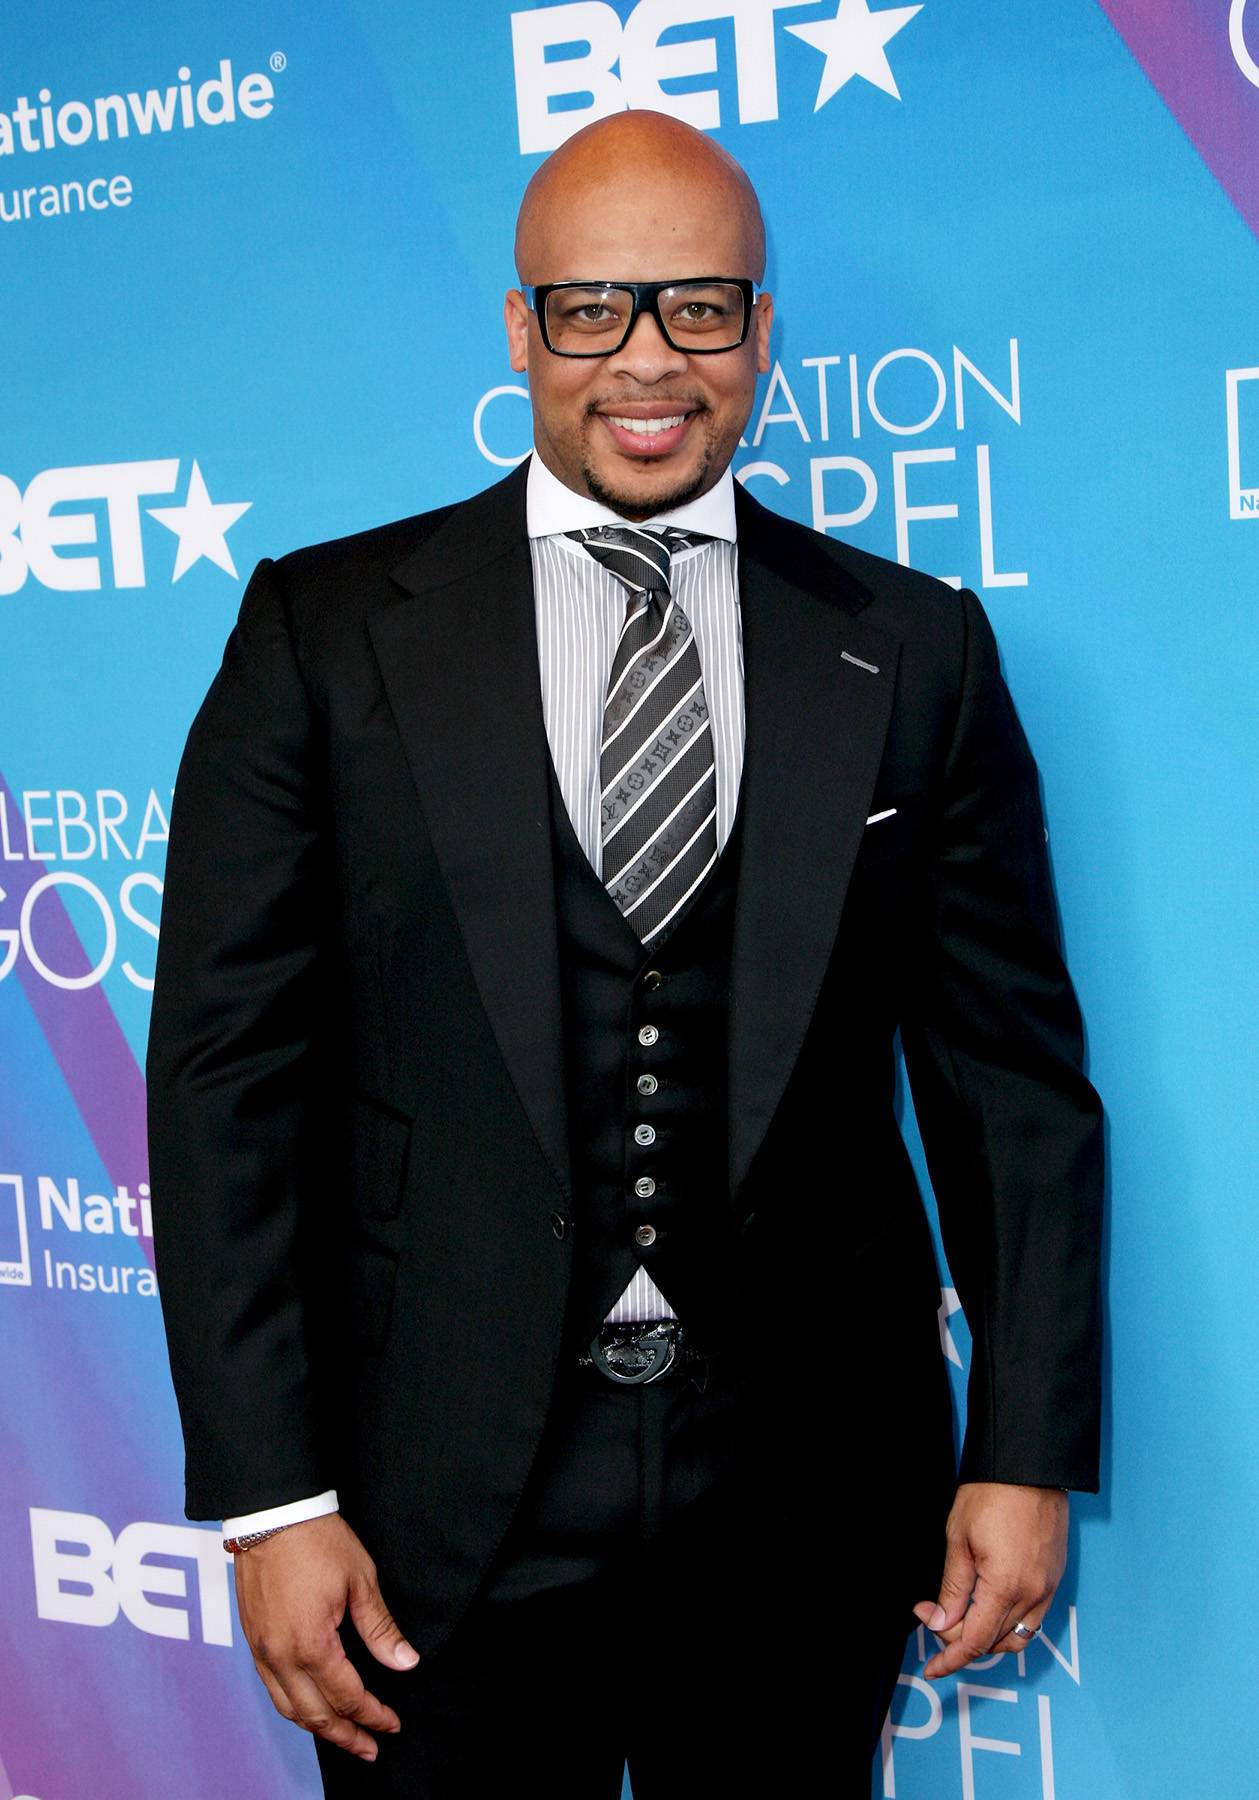 James Fortune  - James Fortune is a two-time Grammy Award-nominated gospel artist, songwriter and producer. If you're listening in to 1190 AM WLIB, you'll catch him as a radio personality too! (Photo: Maury Phillips/Getty Images for BET)